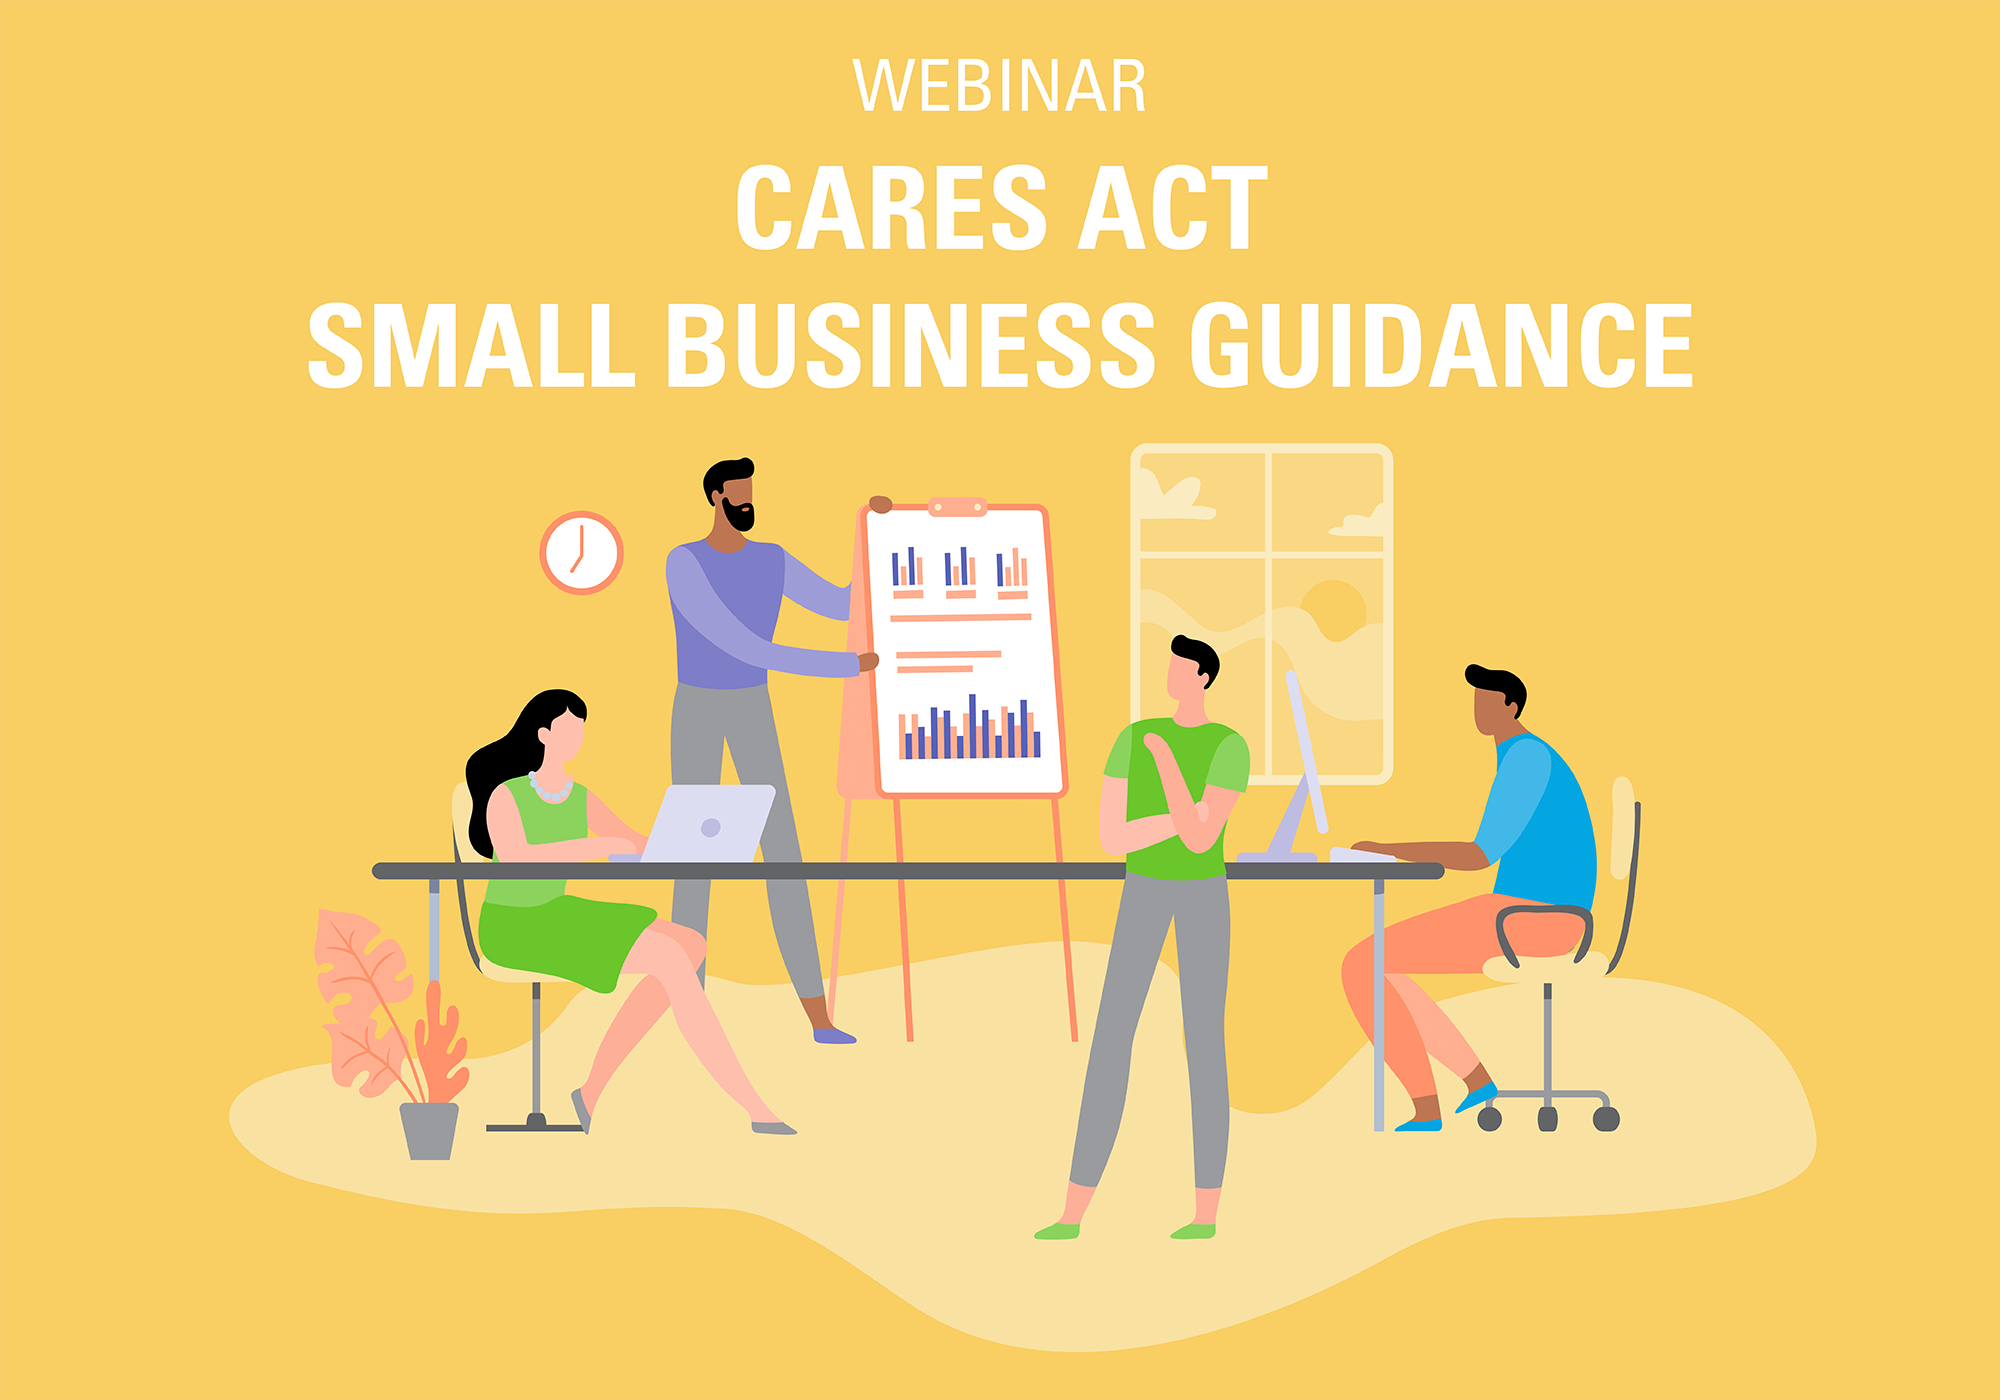 cares act small business guidance